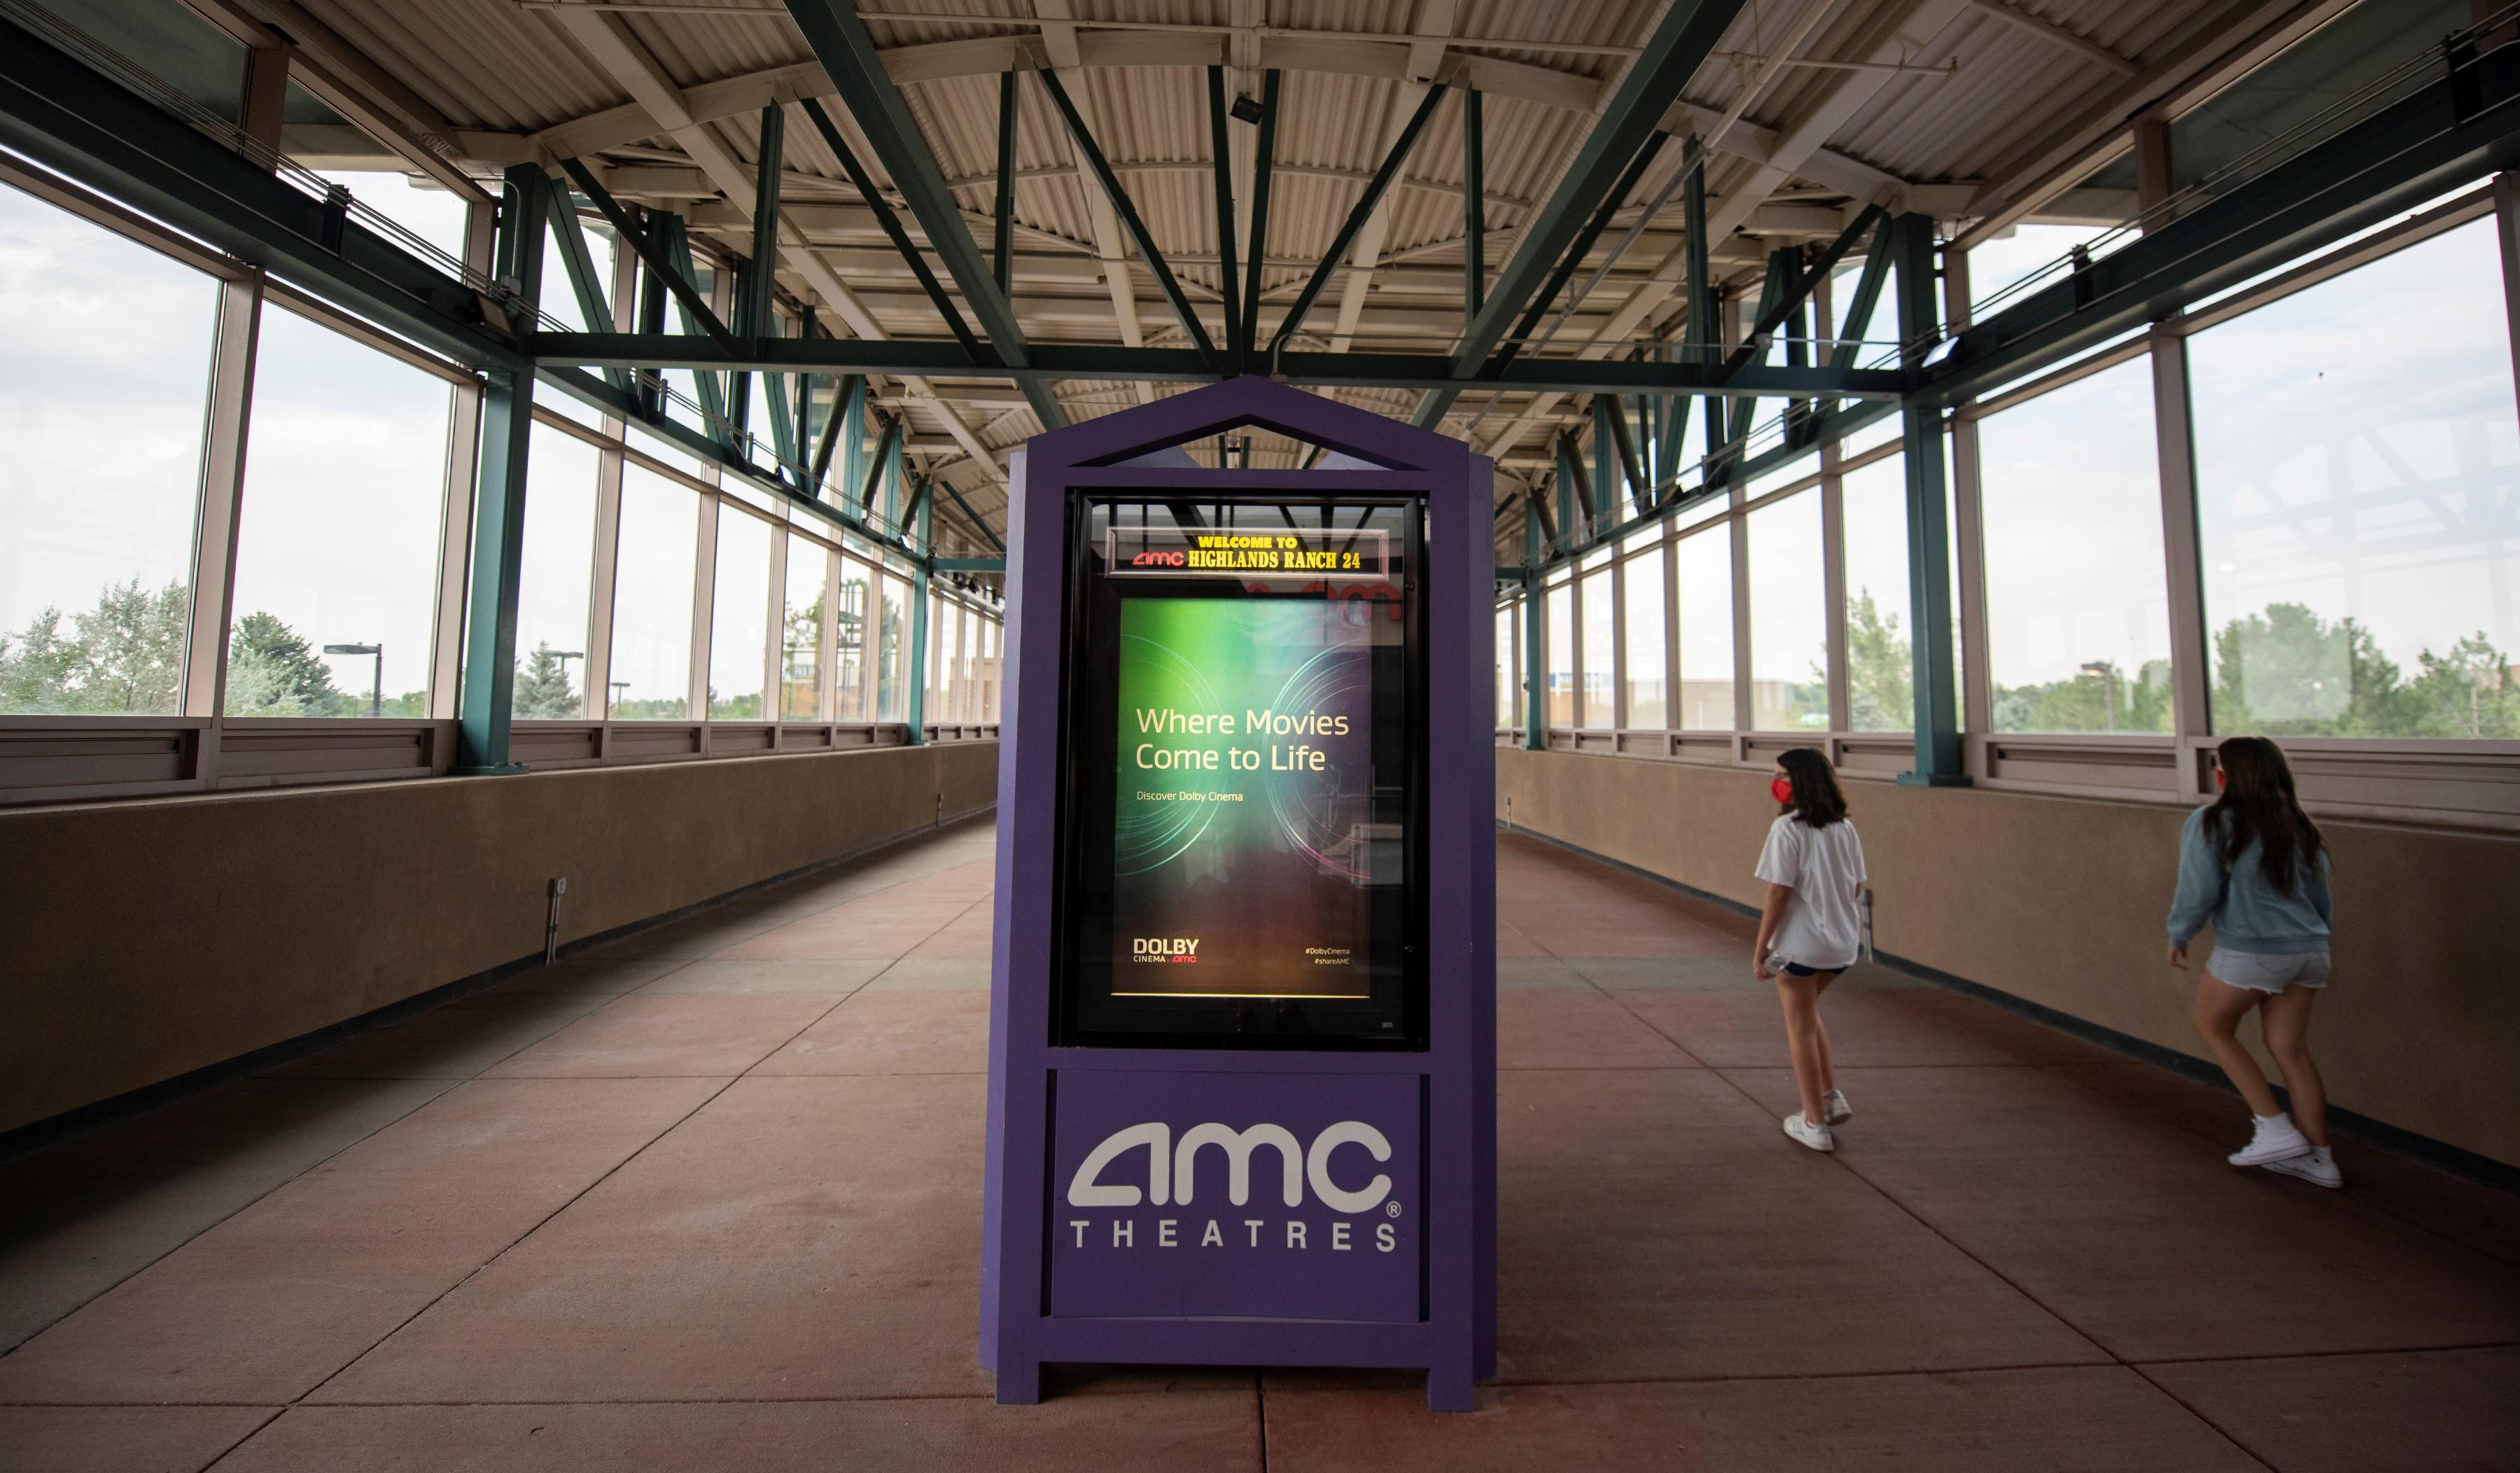 AMC advertisement in walkway